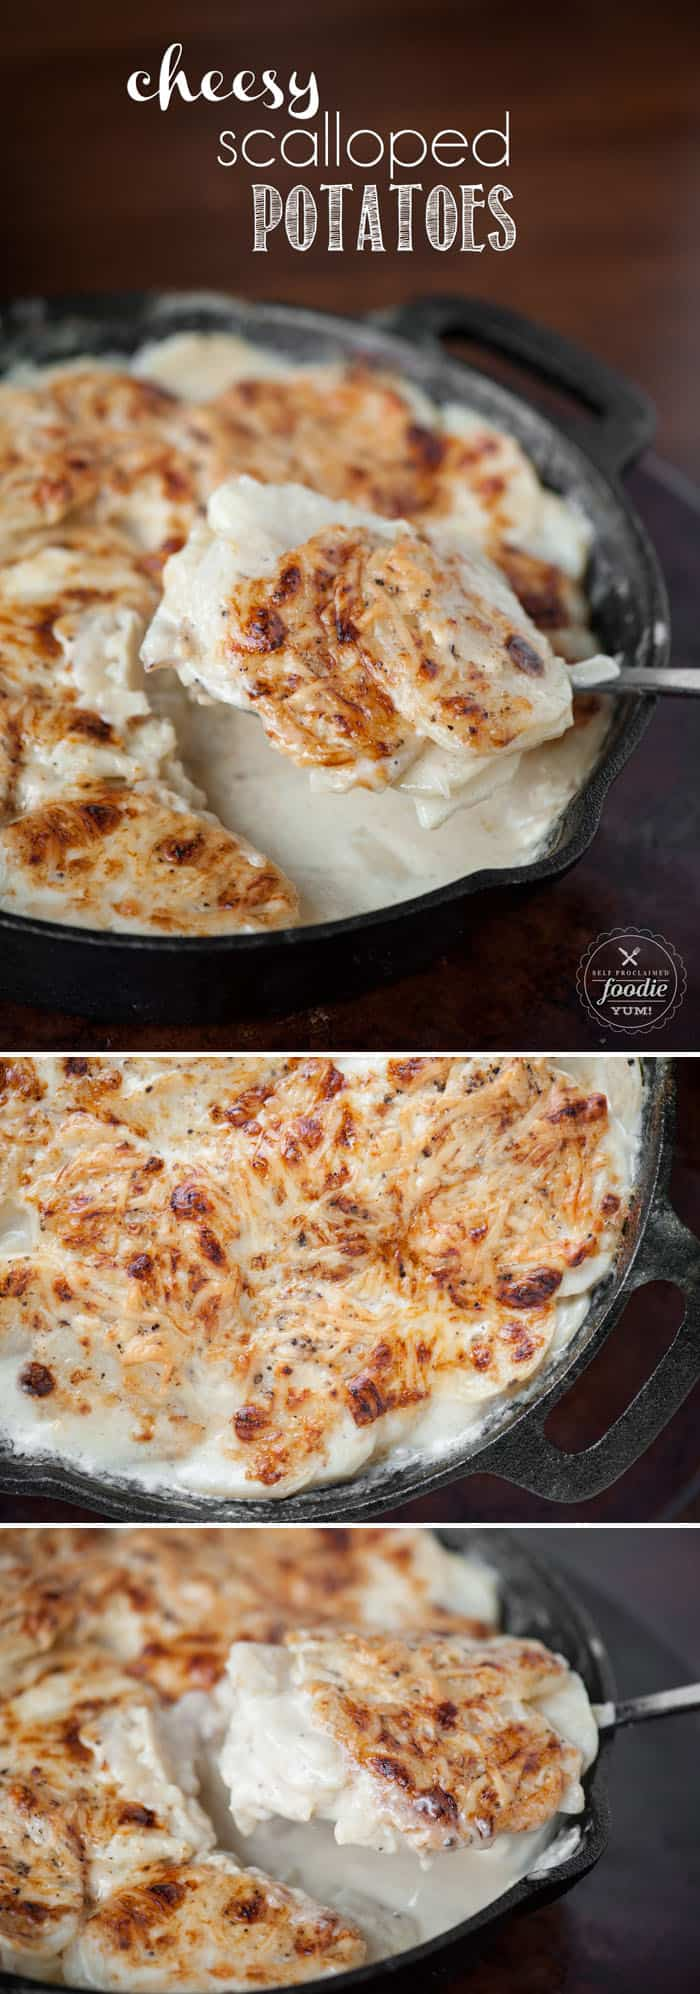 These Cheesy Scalloped Potatoes are so tender and flavorful, they make the perfect side dish at dinner and even taste great leftover or for breakfast!